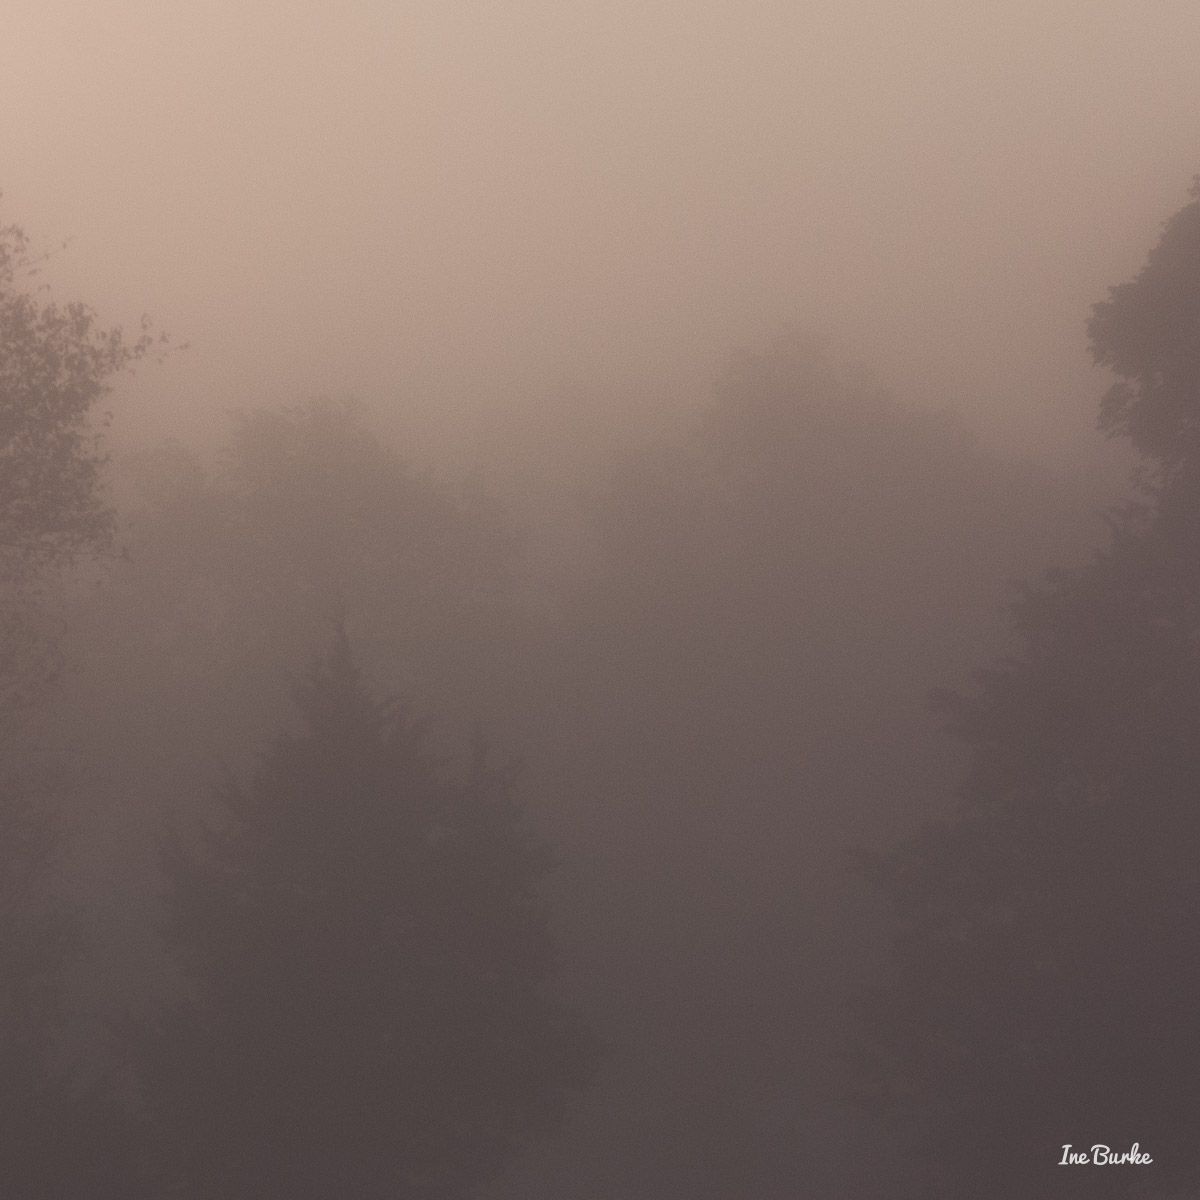 20150826-149_0099Foggy Morning